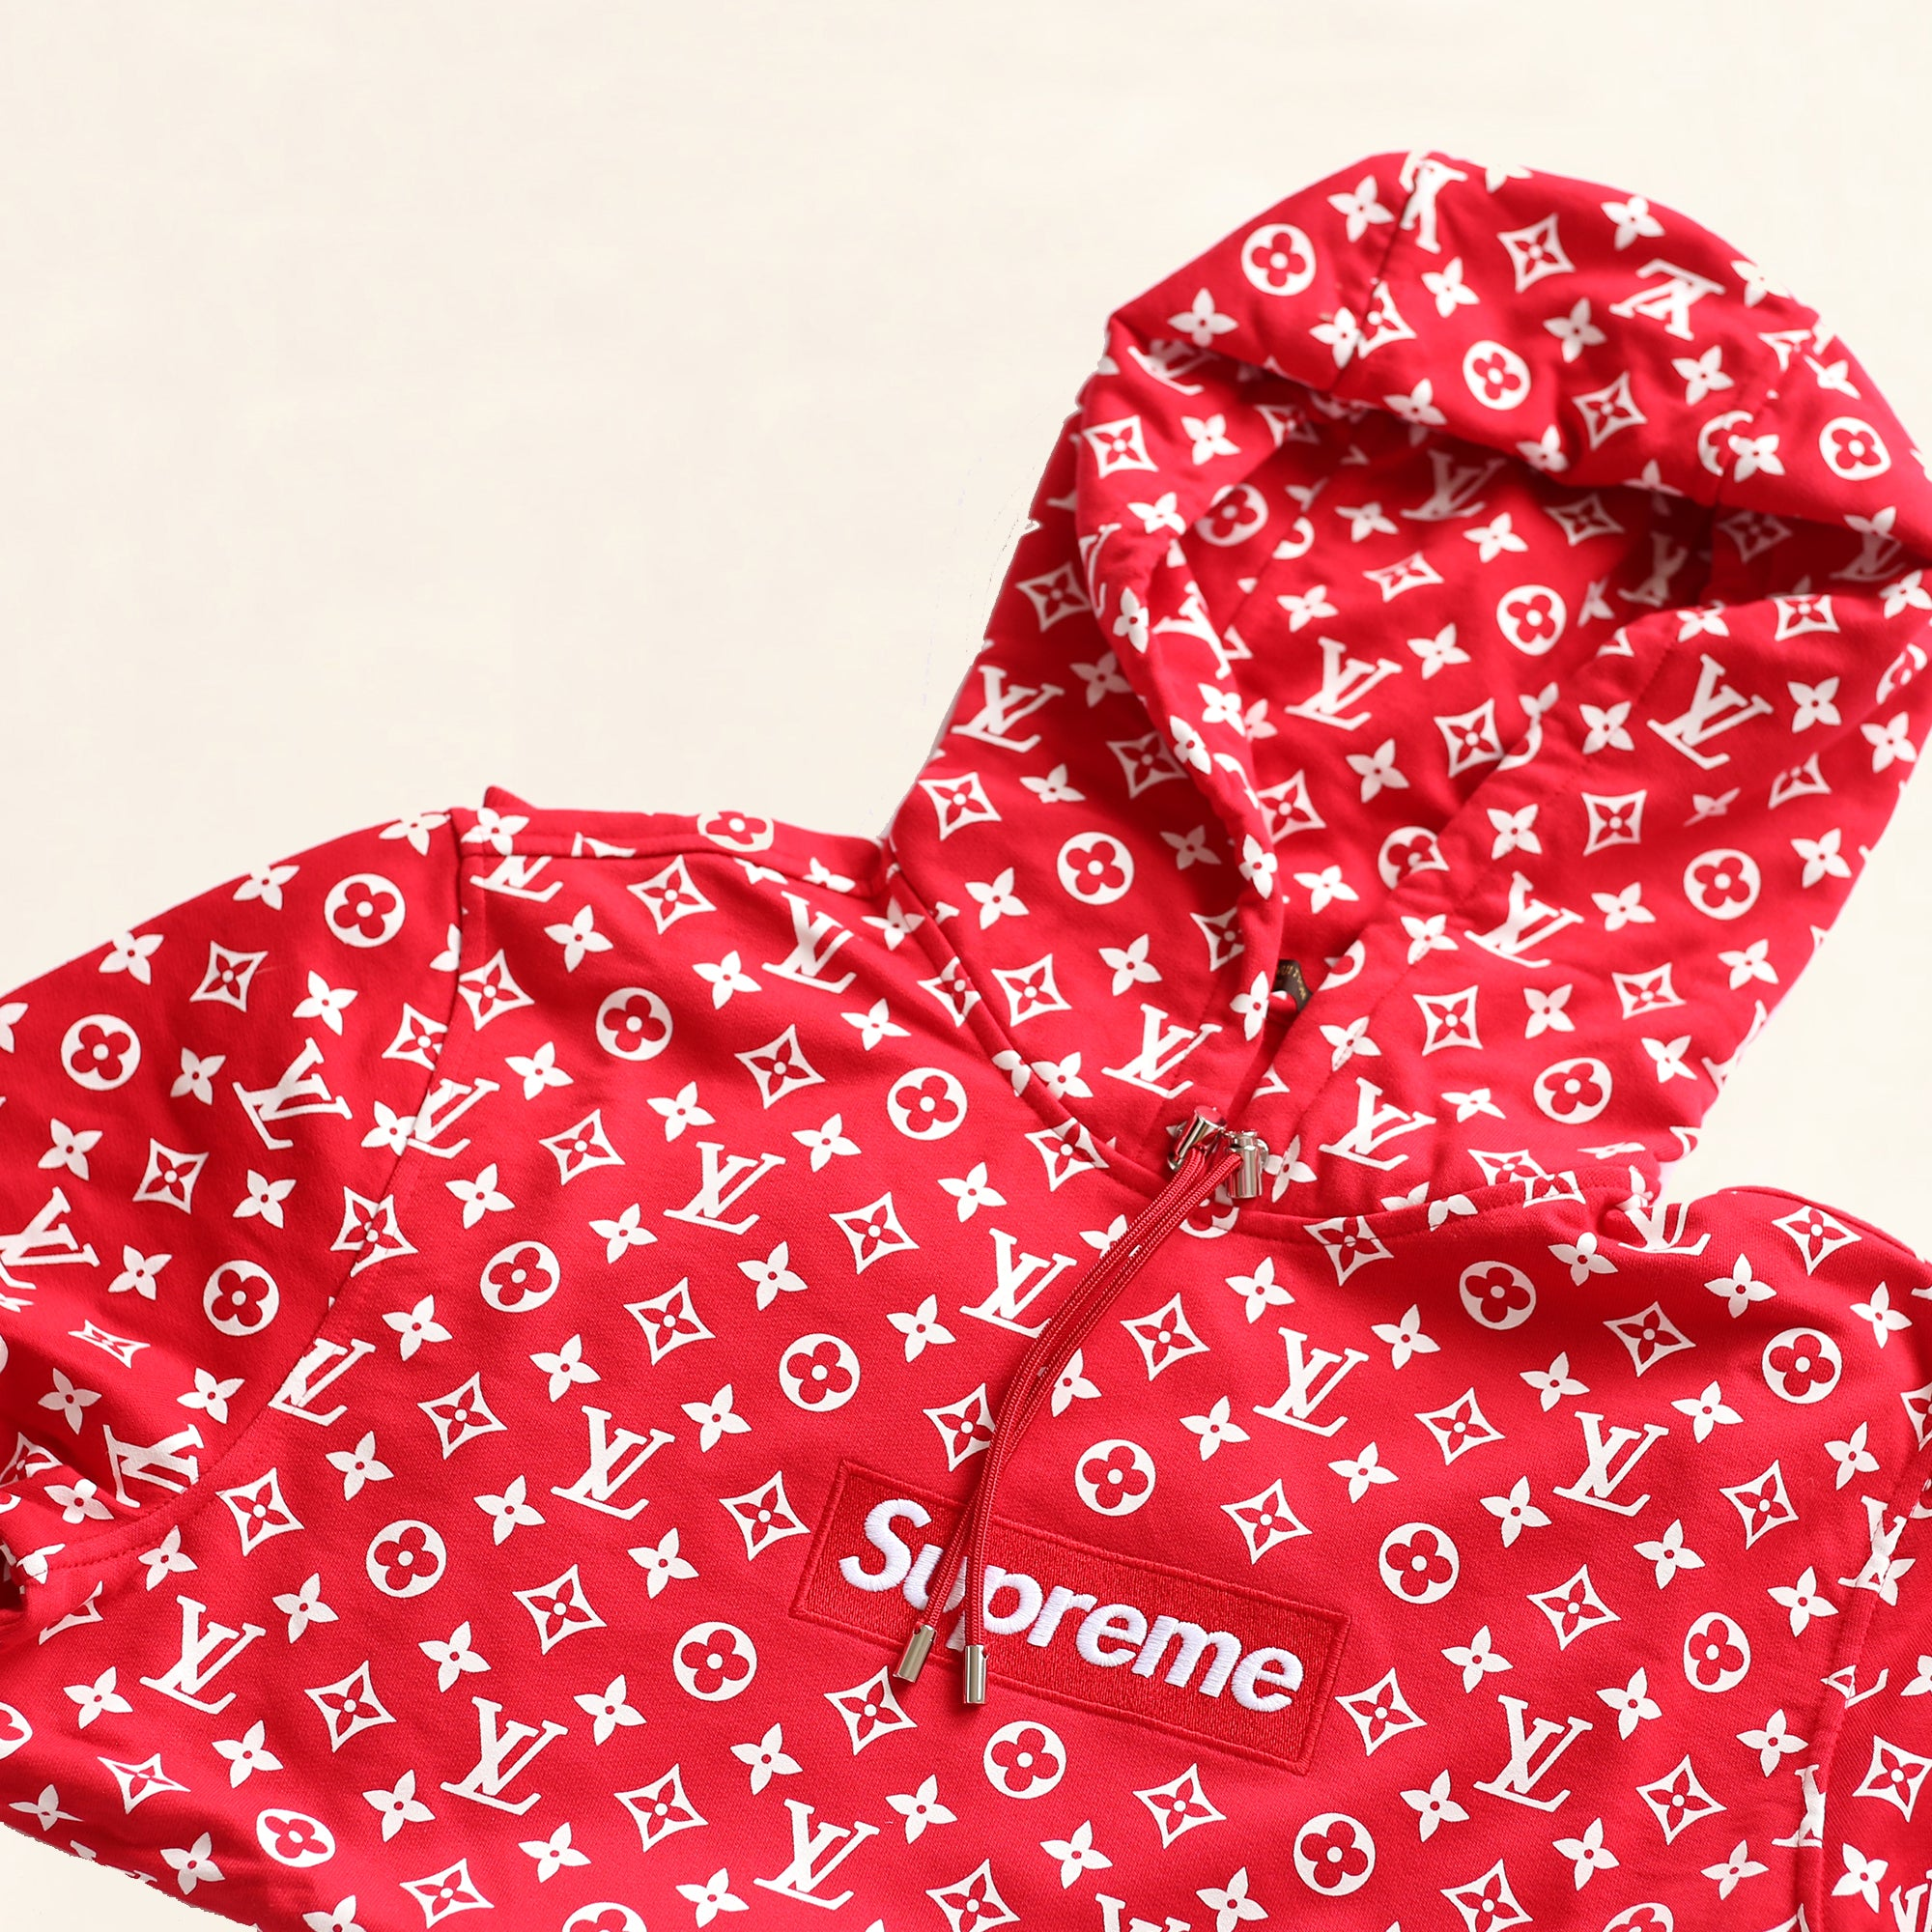 louis vuitton supreme logo box hoodie monogram red the collectory. Black Bedroom Furniture Sets. Home Design Ideas